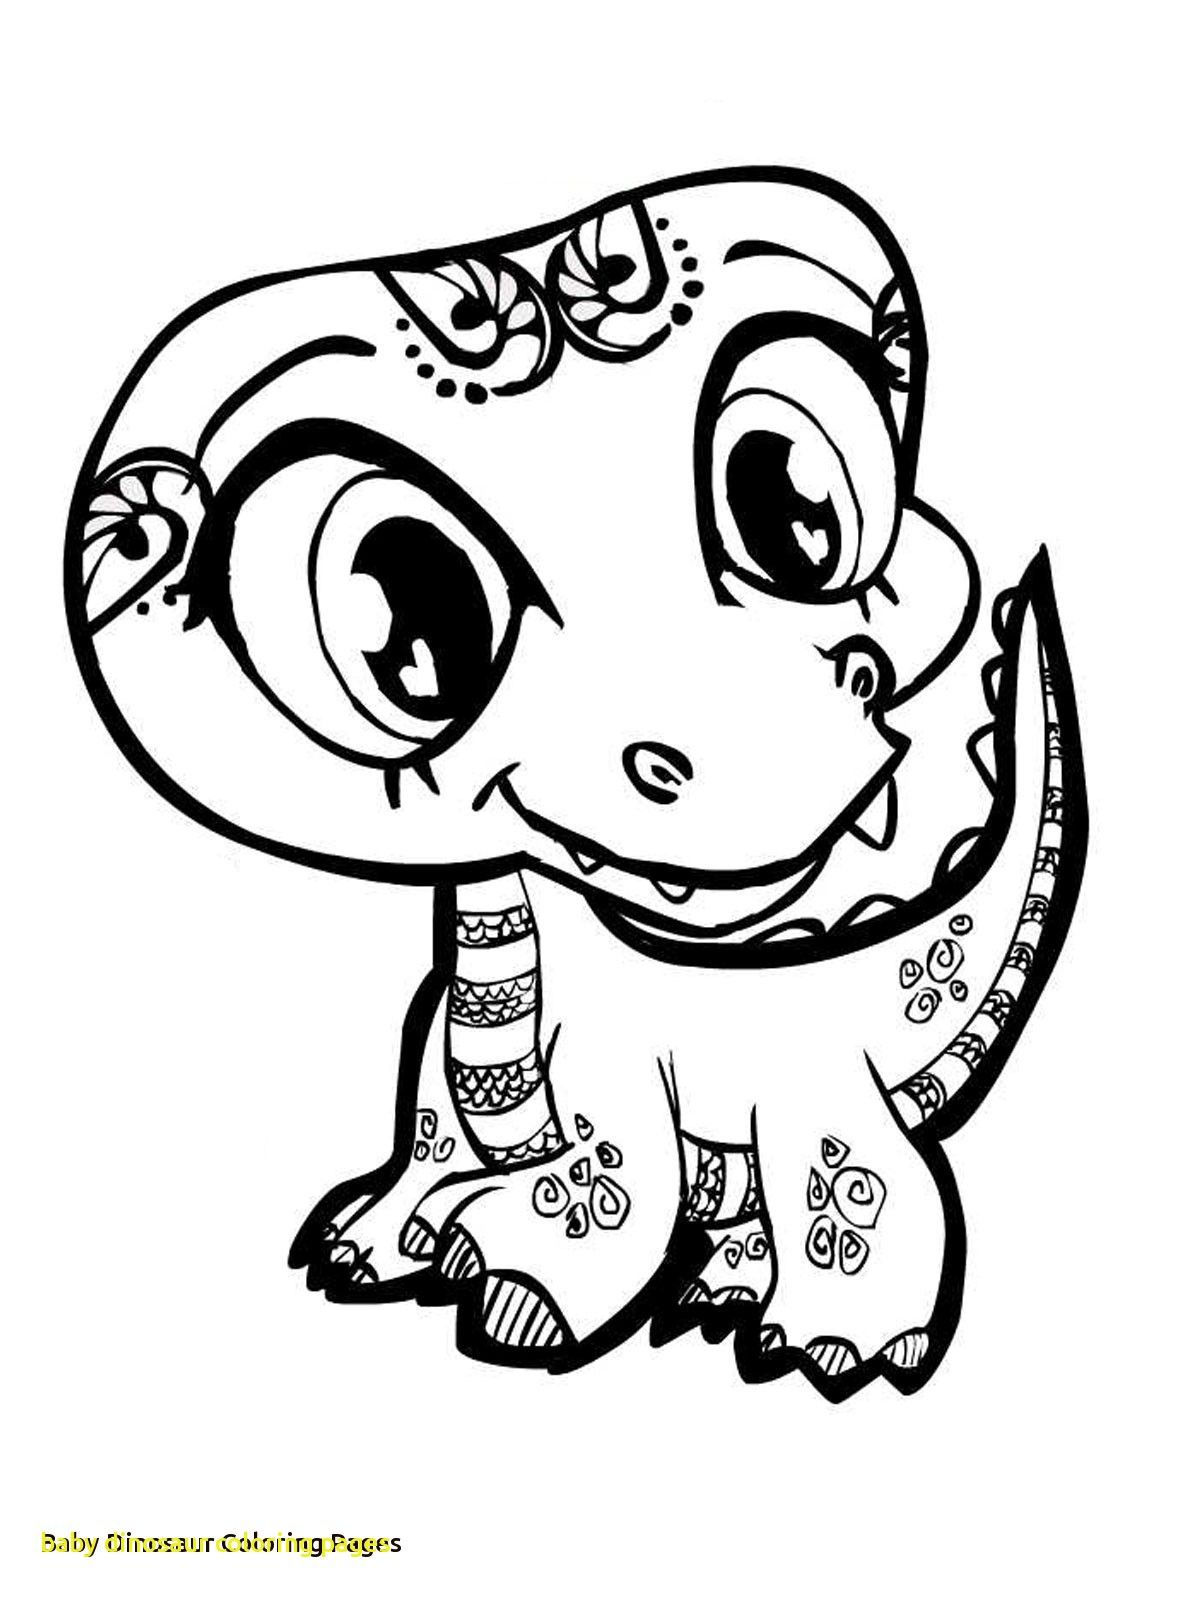 Baby Dinosaur Coloring Pages with Best Fresh Cute Dinosaur Coloring ...